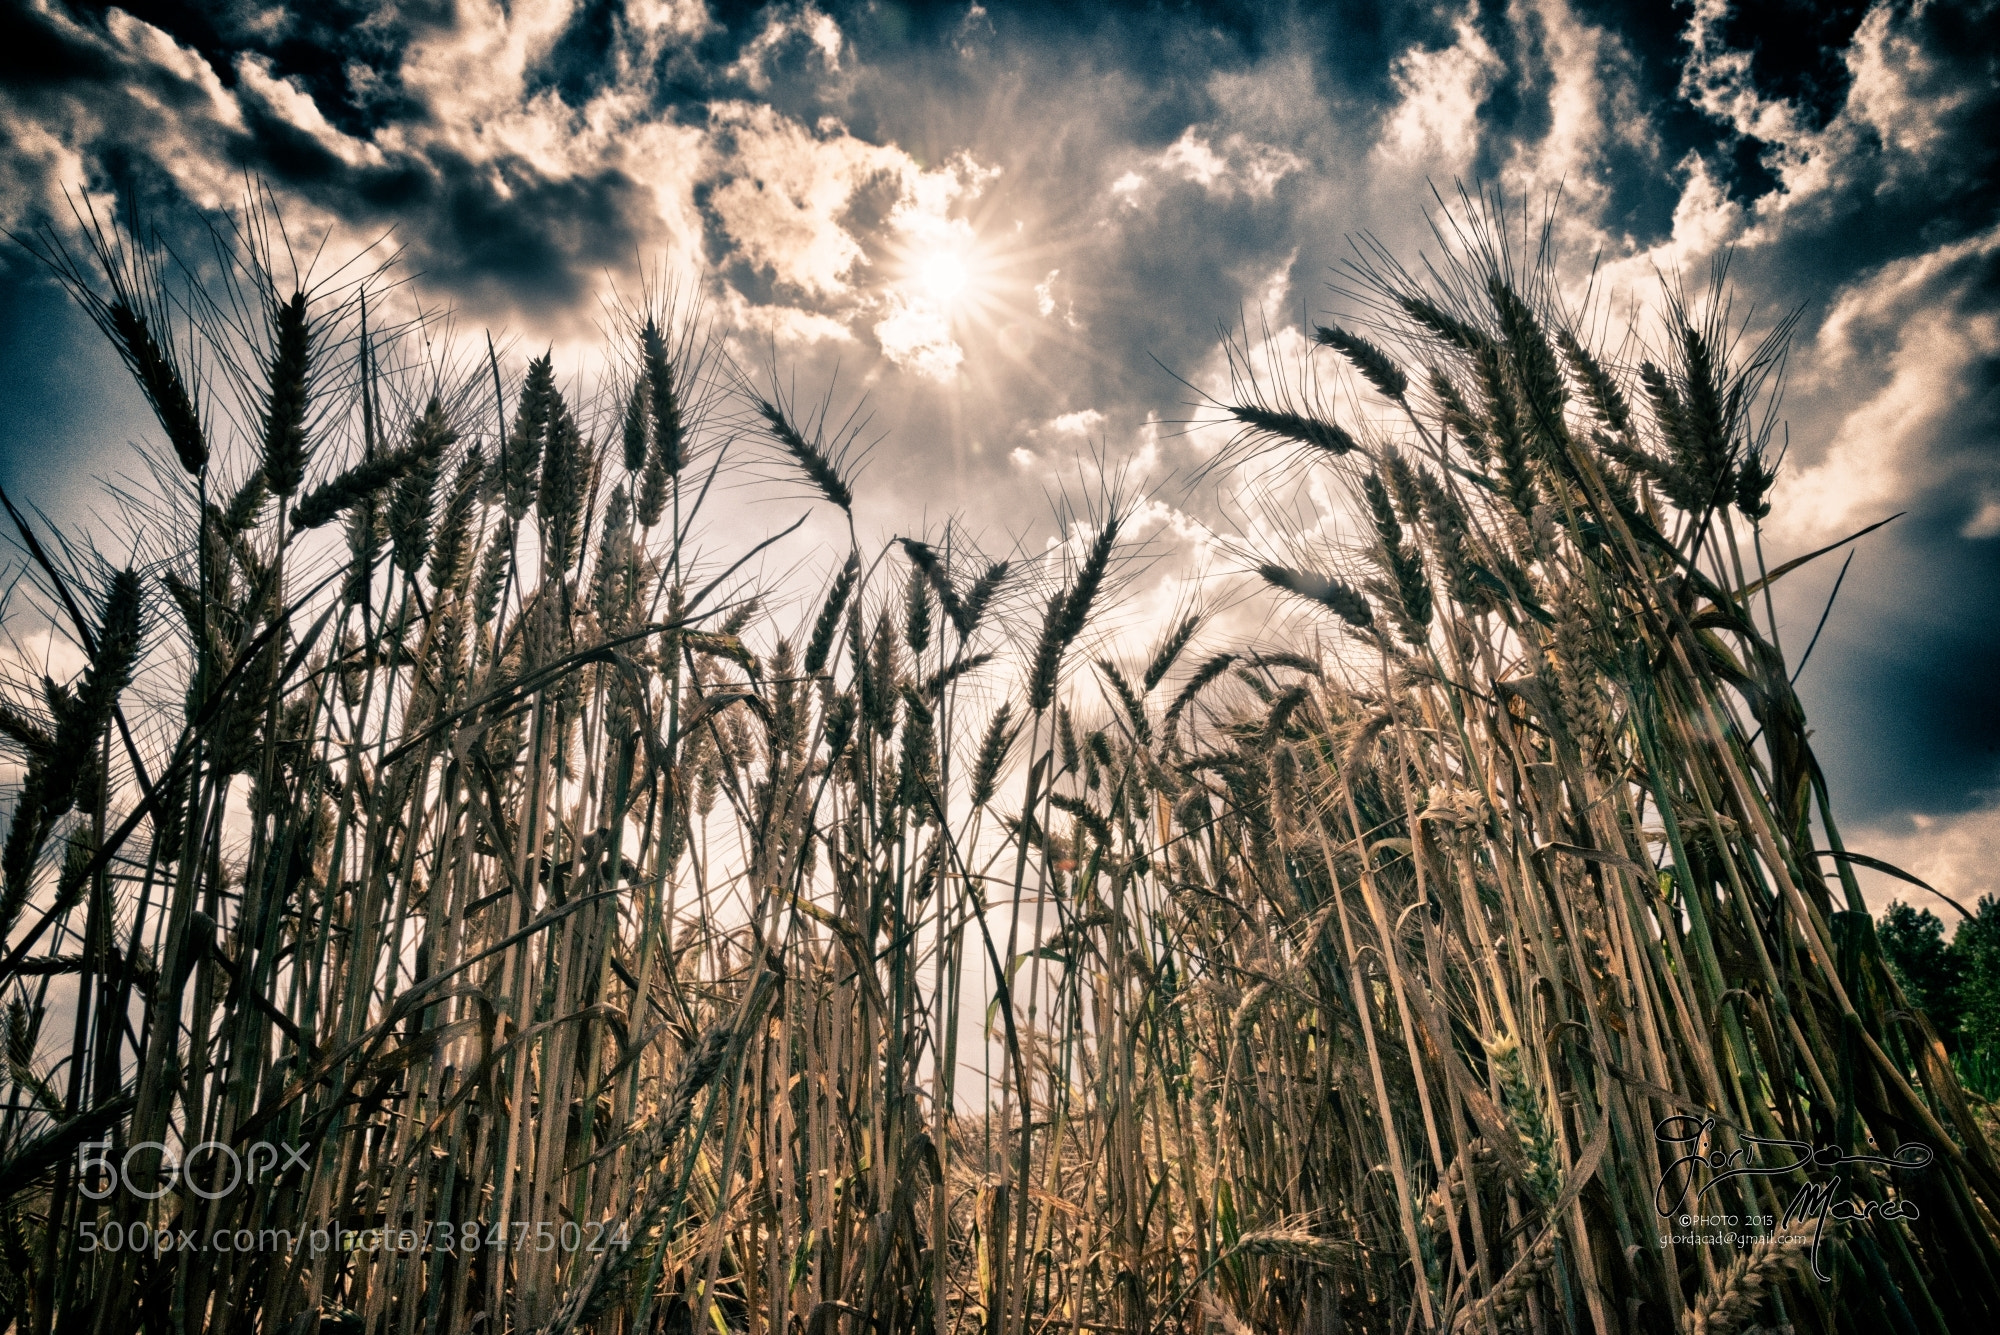 Photograph To the sky by Marco Giordanino on 500px